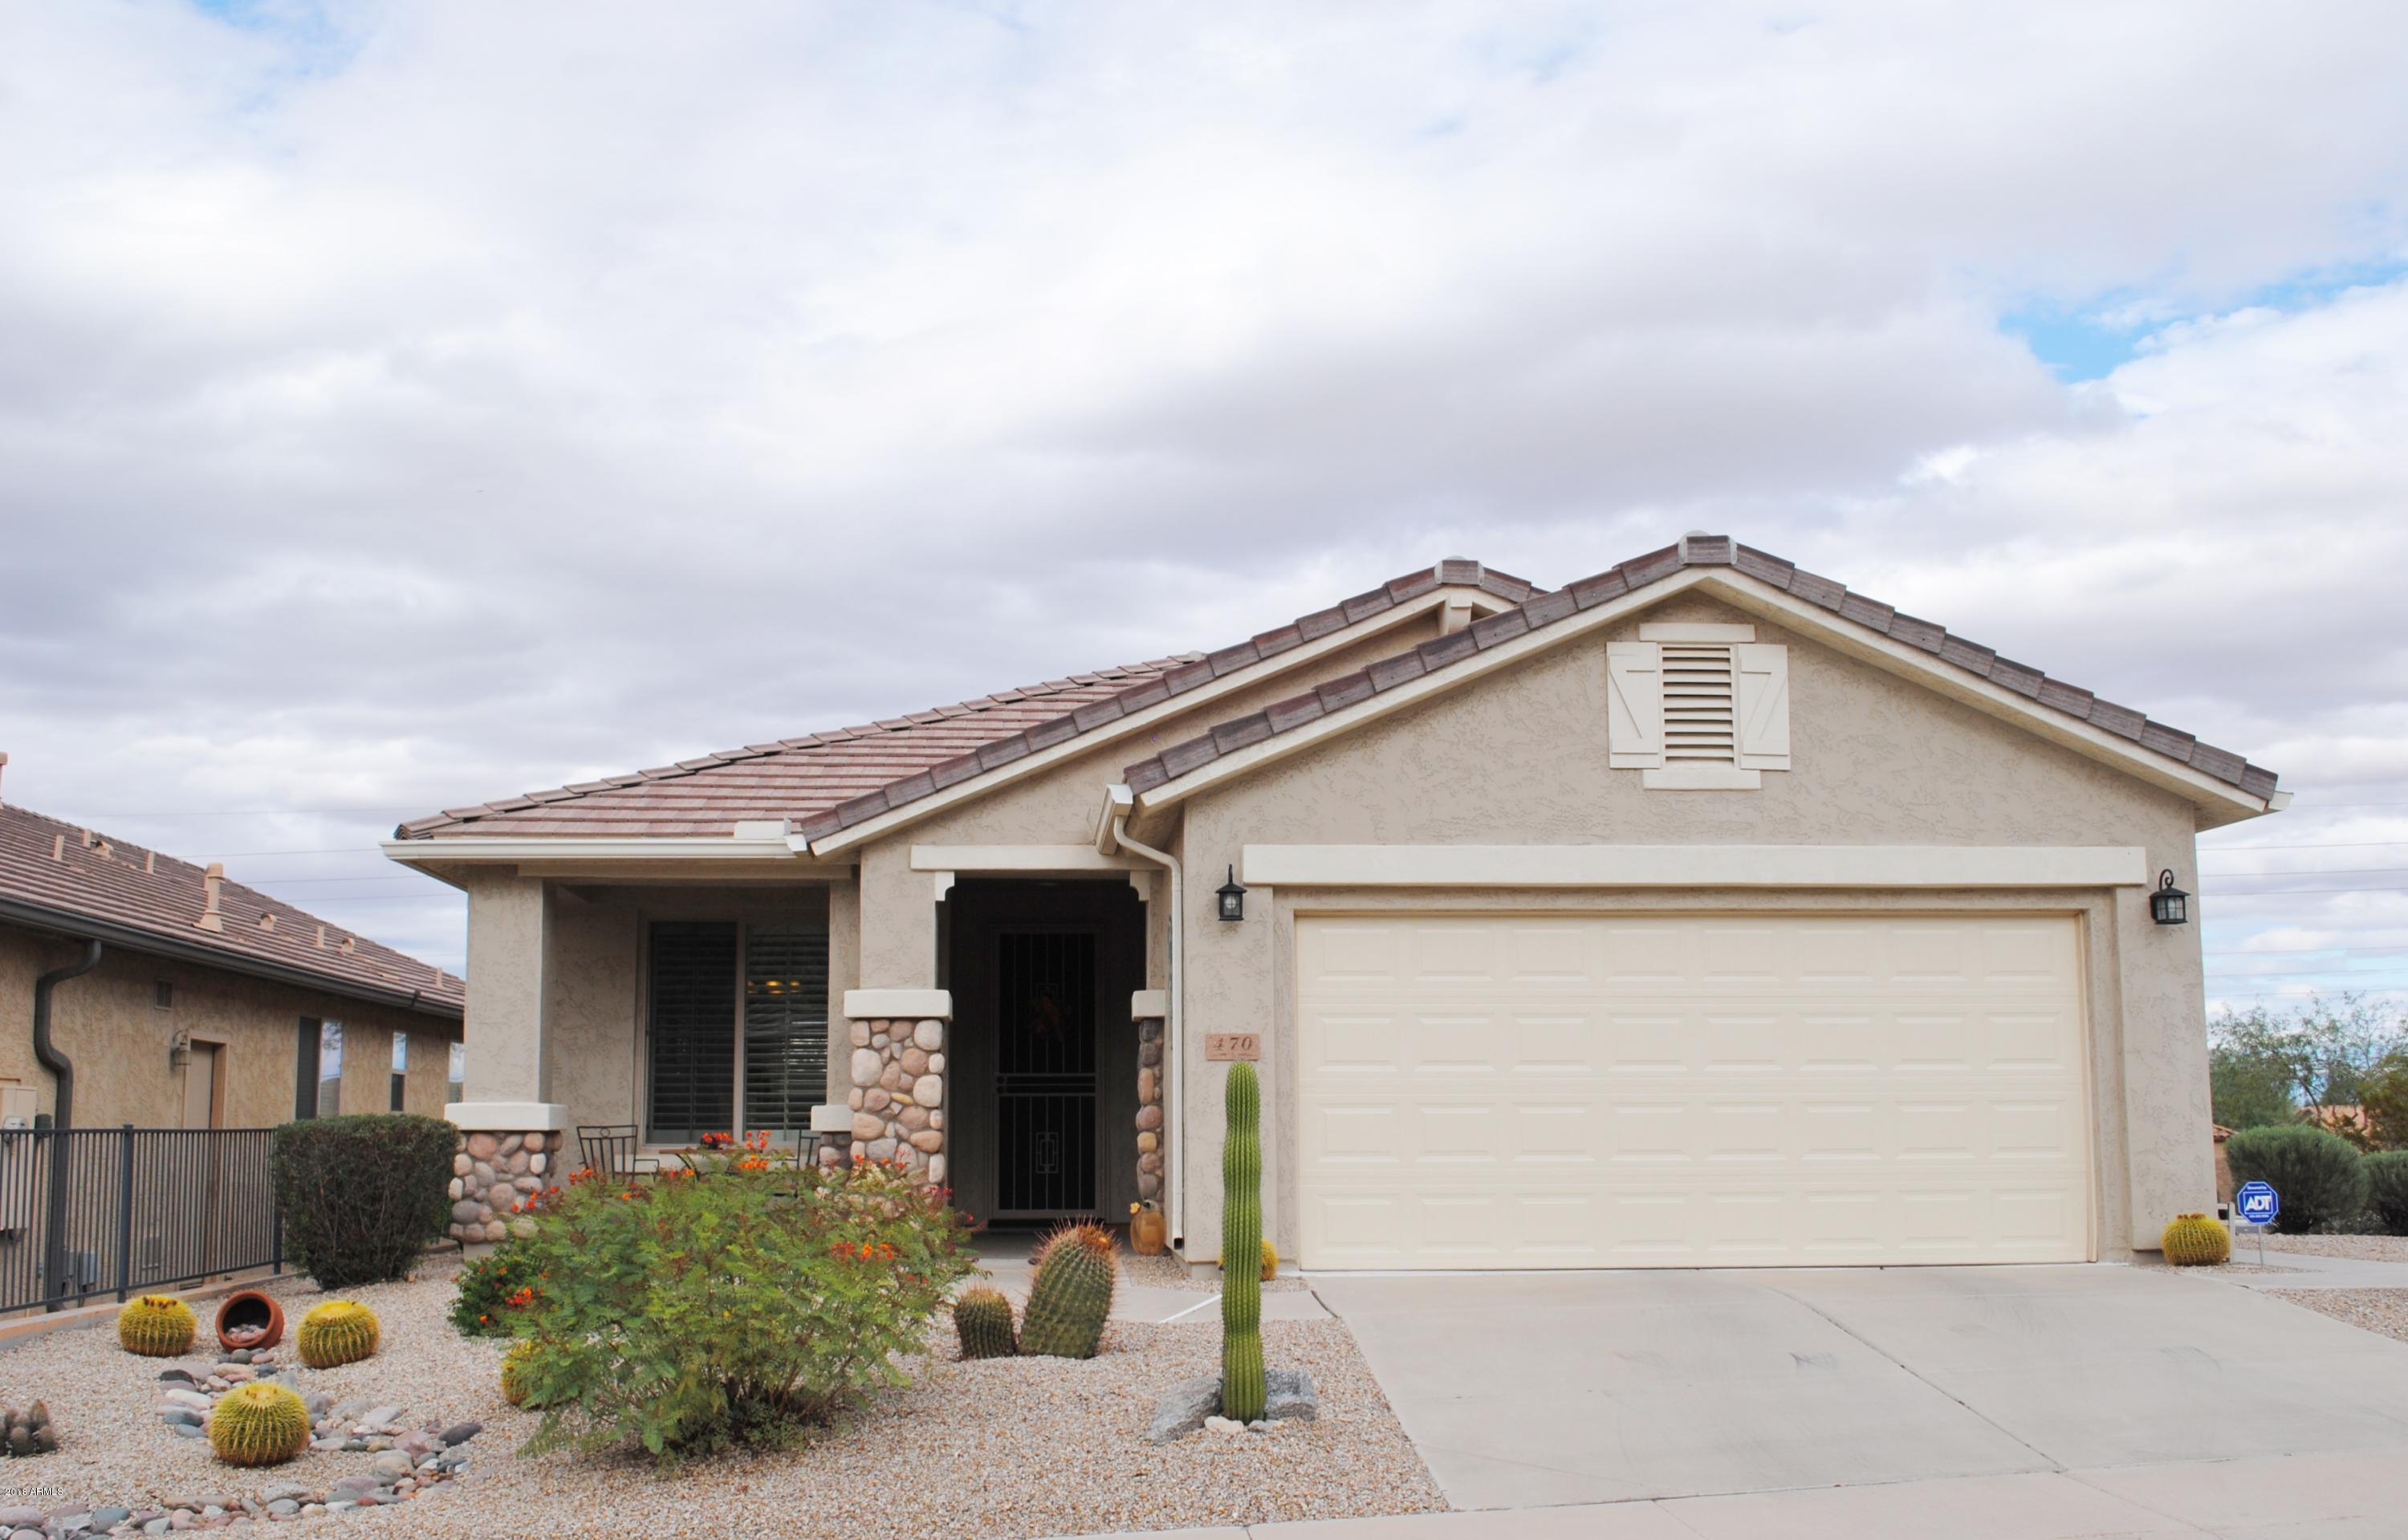 Photo for 470 W Twin Peaks Parkway, San Tan Valley, AZ 85143 (MLS # 5836634)